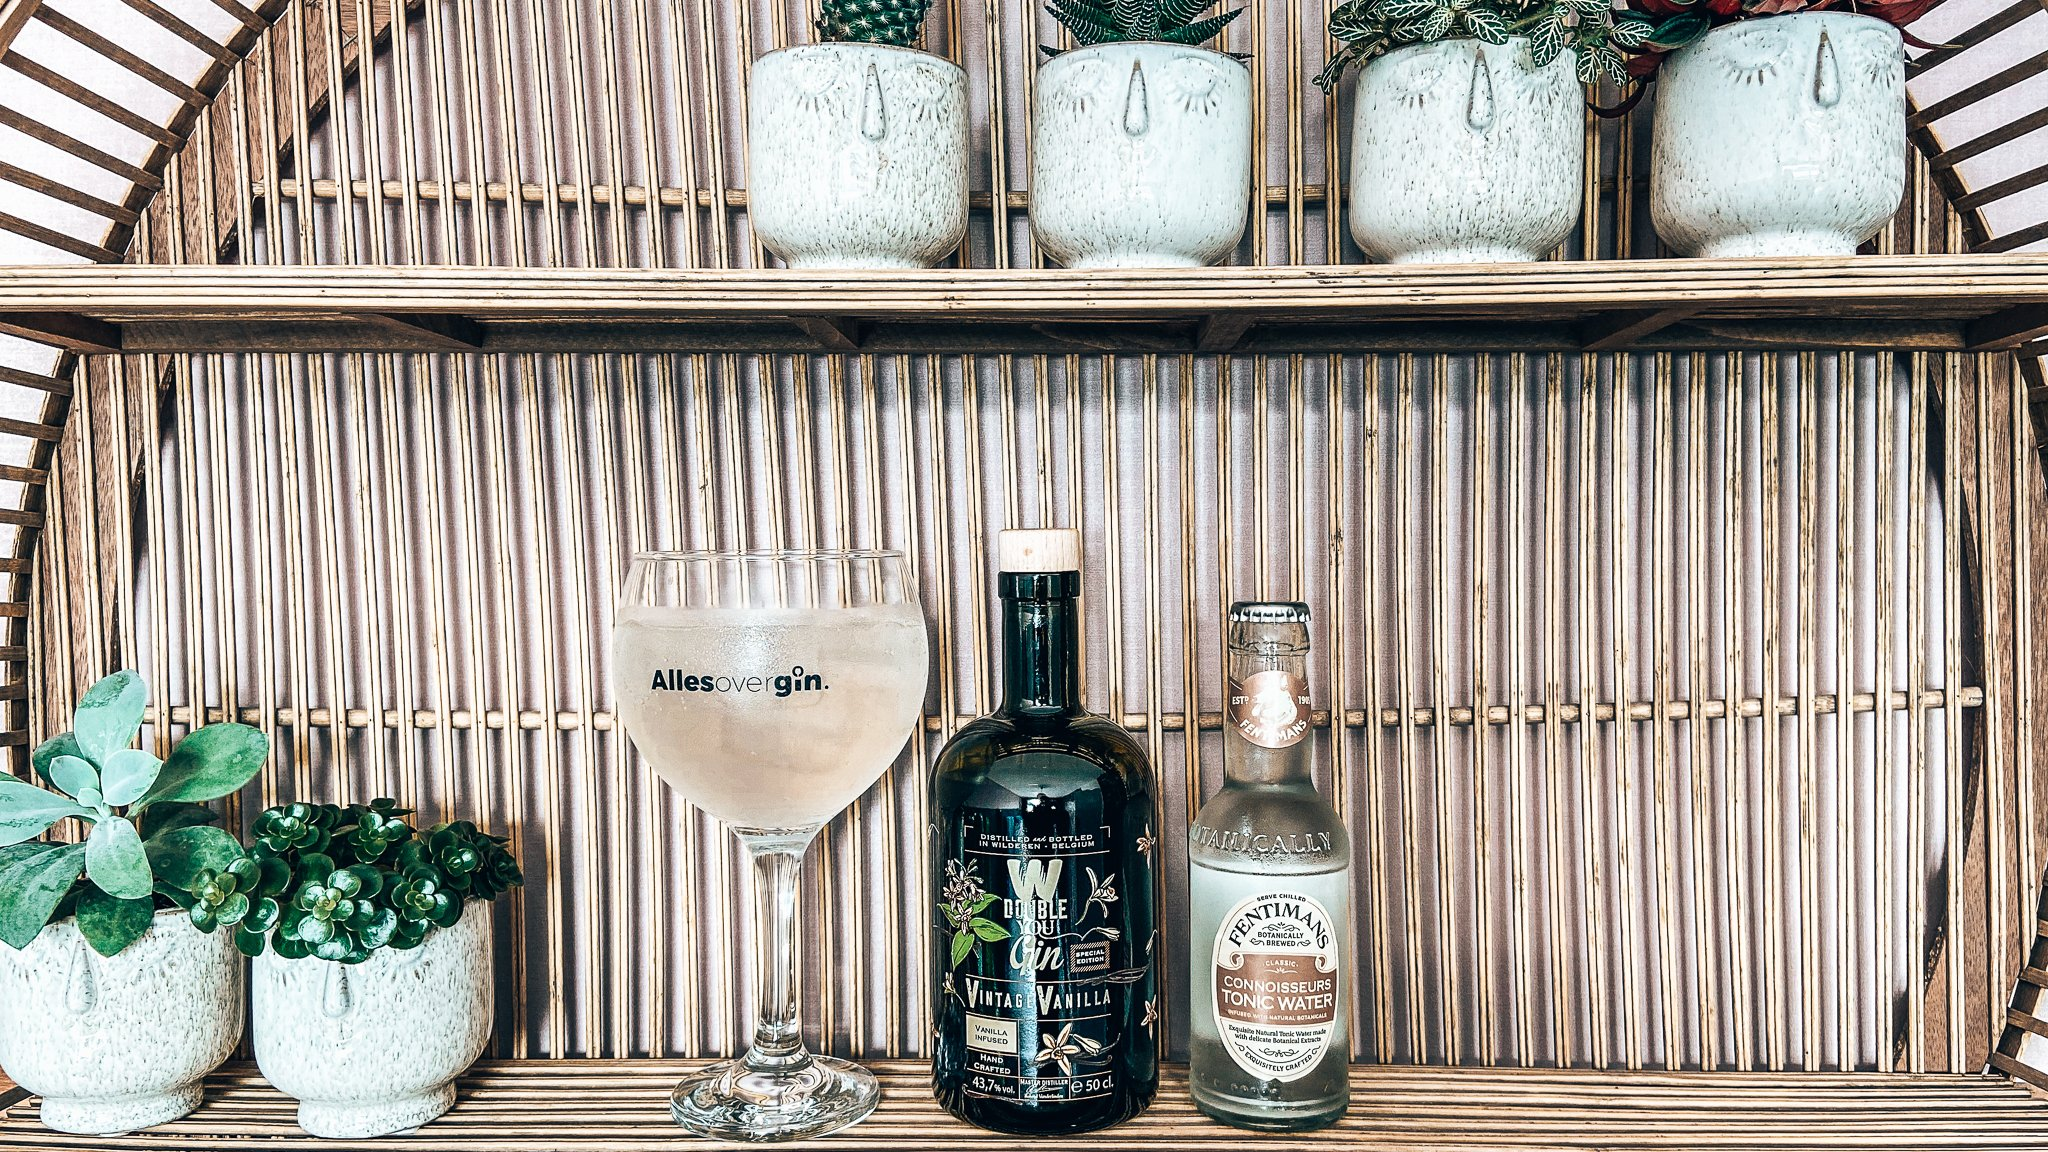 Wilderen Double You Vintage Vanilla Gin, Recept GT Vanilla, Alles over gin.